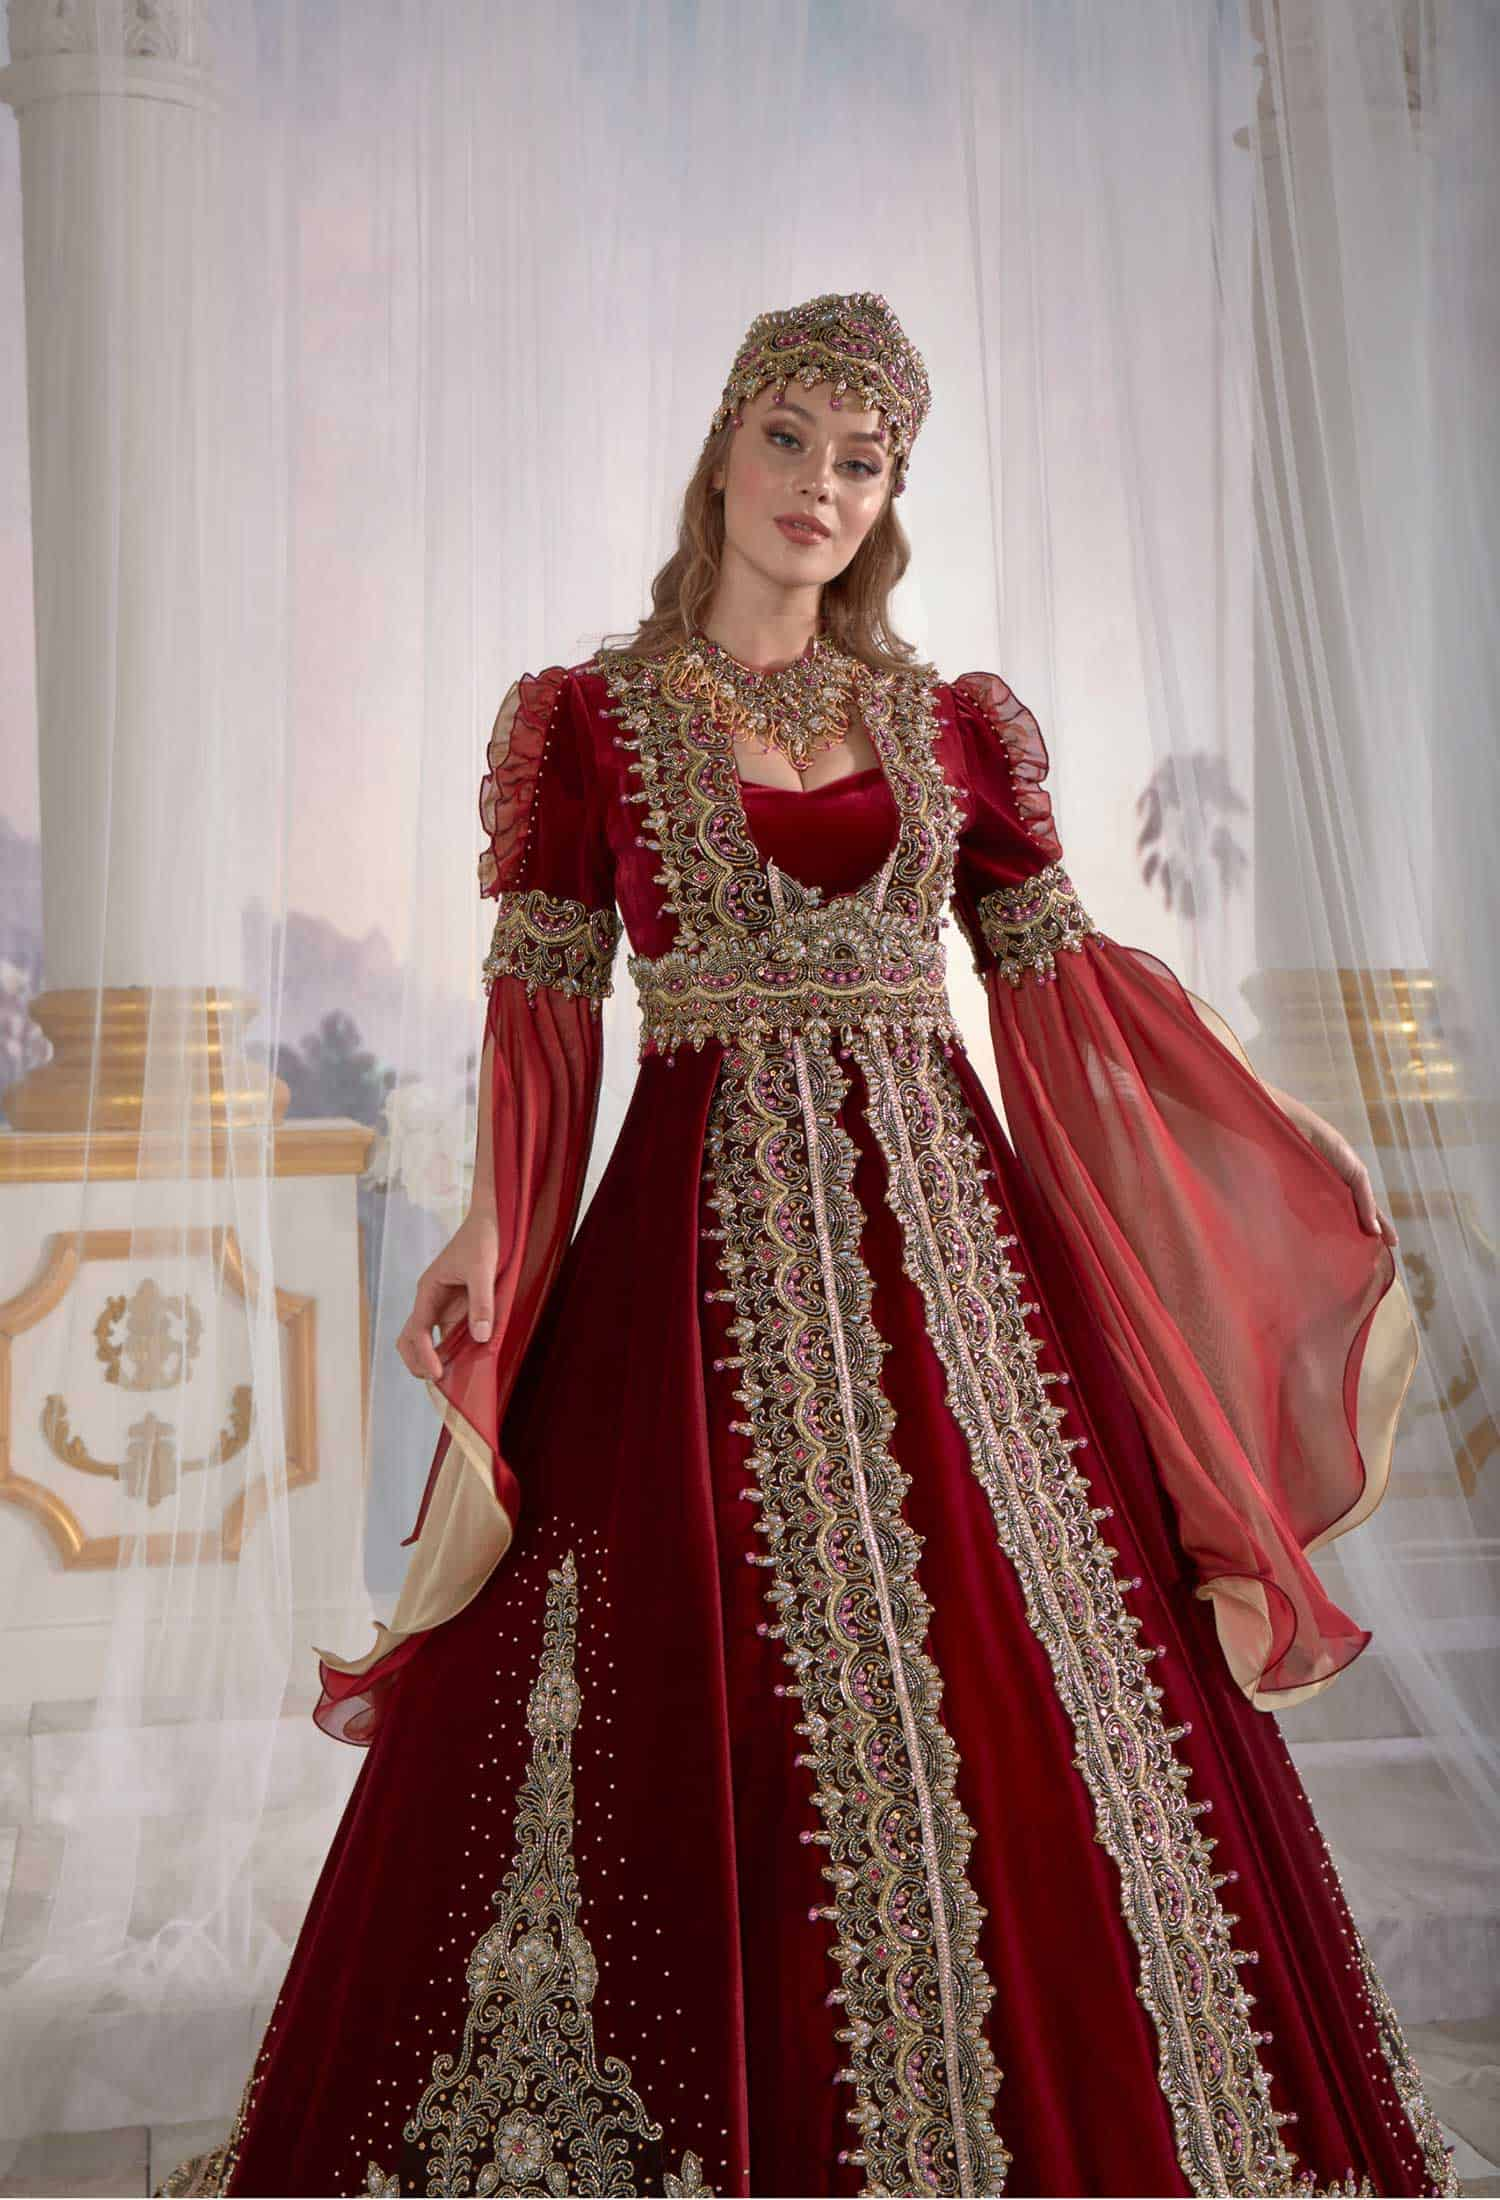 Dark Red Exclusive Luxury Gowns Dresses Tulle Sleeve Lace Appliques Needle Thread Embroidered Caftan Set Belt Detail